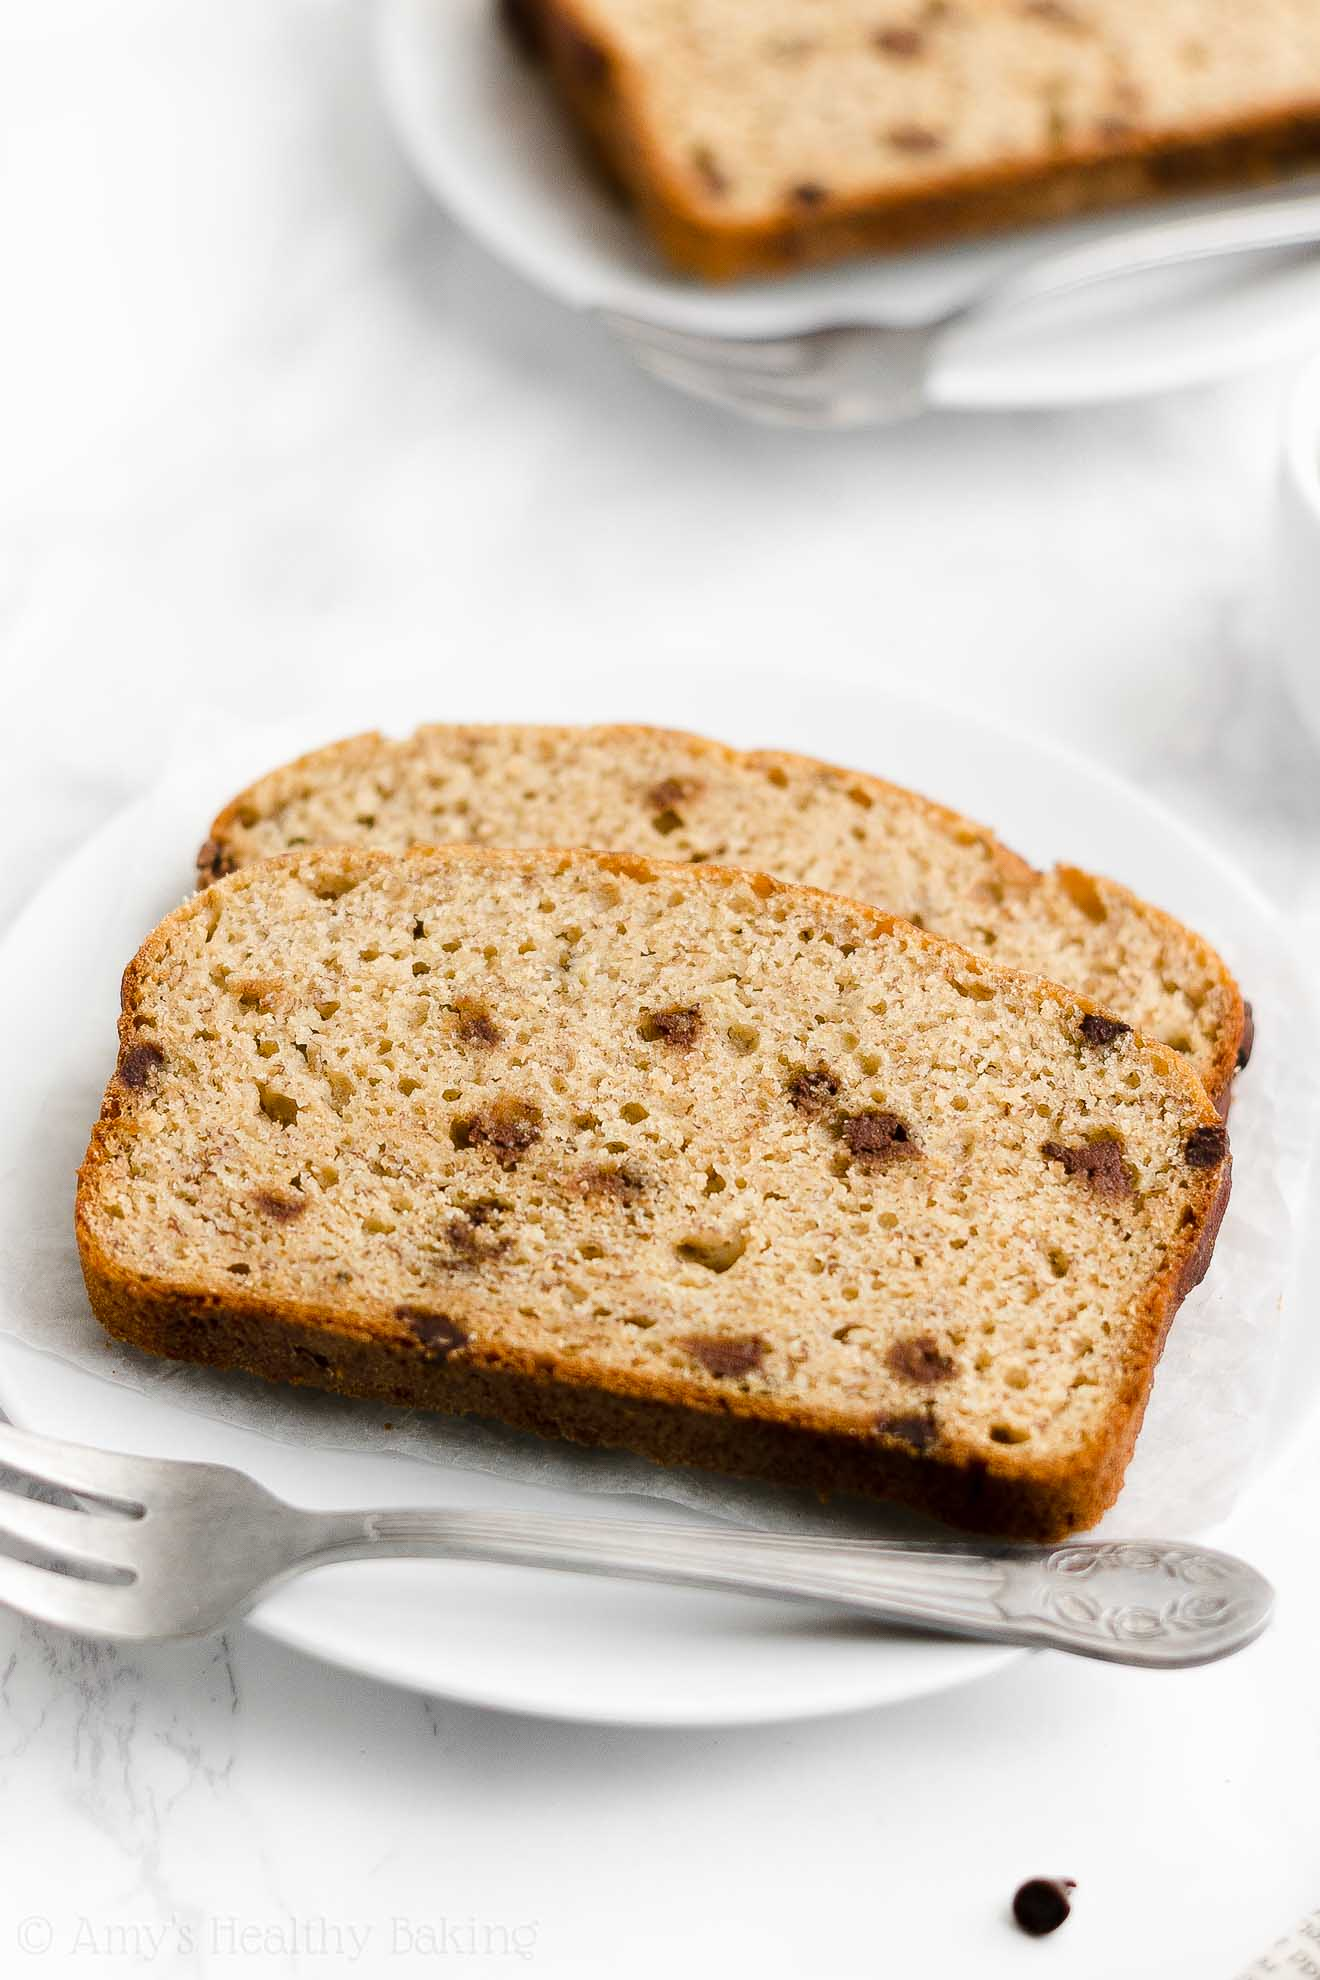 Best Easy Healthy Low Calorie No Sugar One-Bowl Chocolate Chip Banana Bread